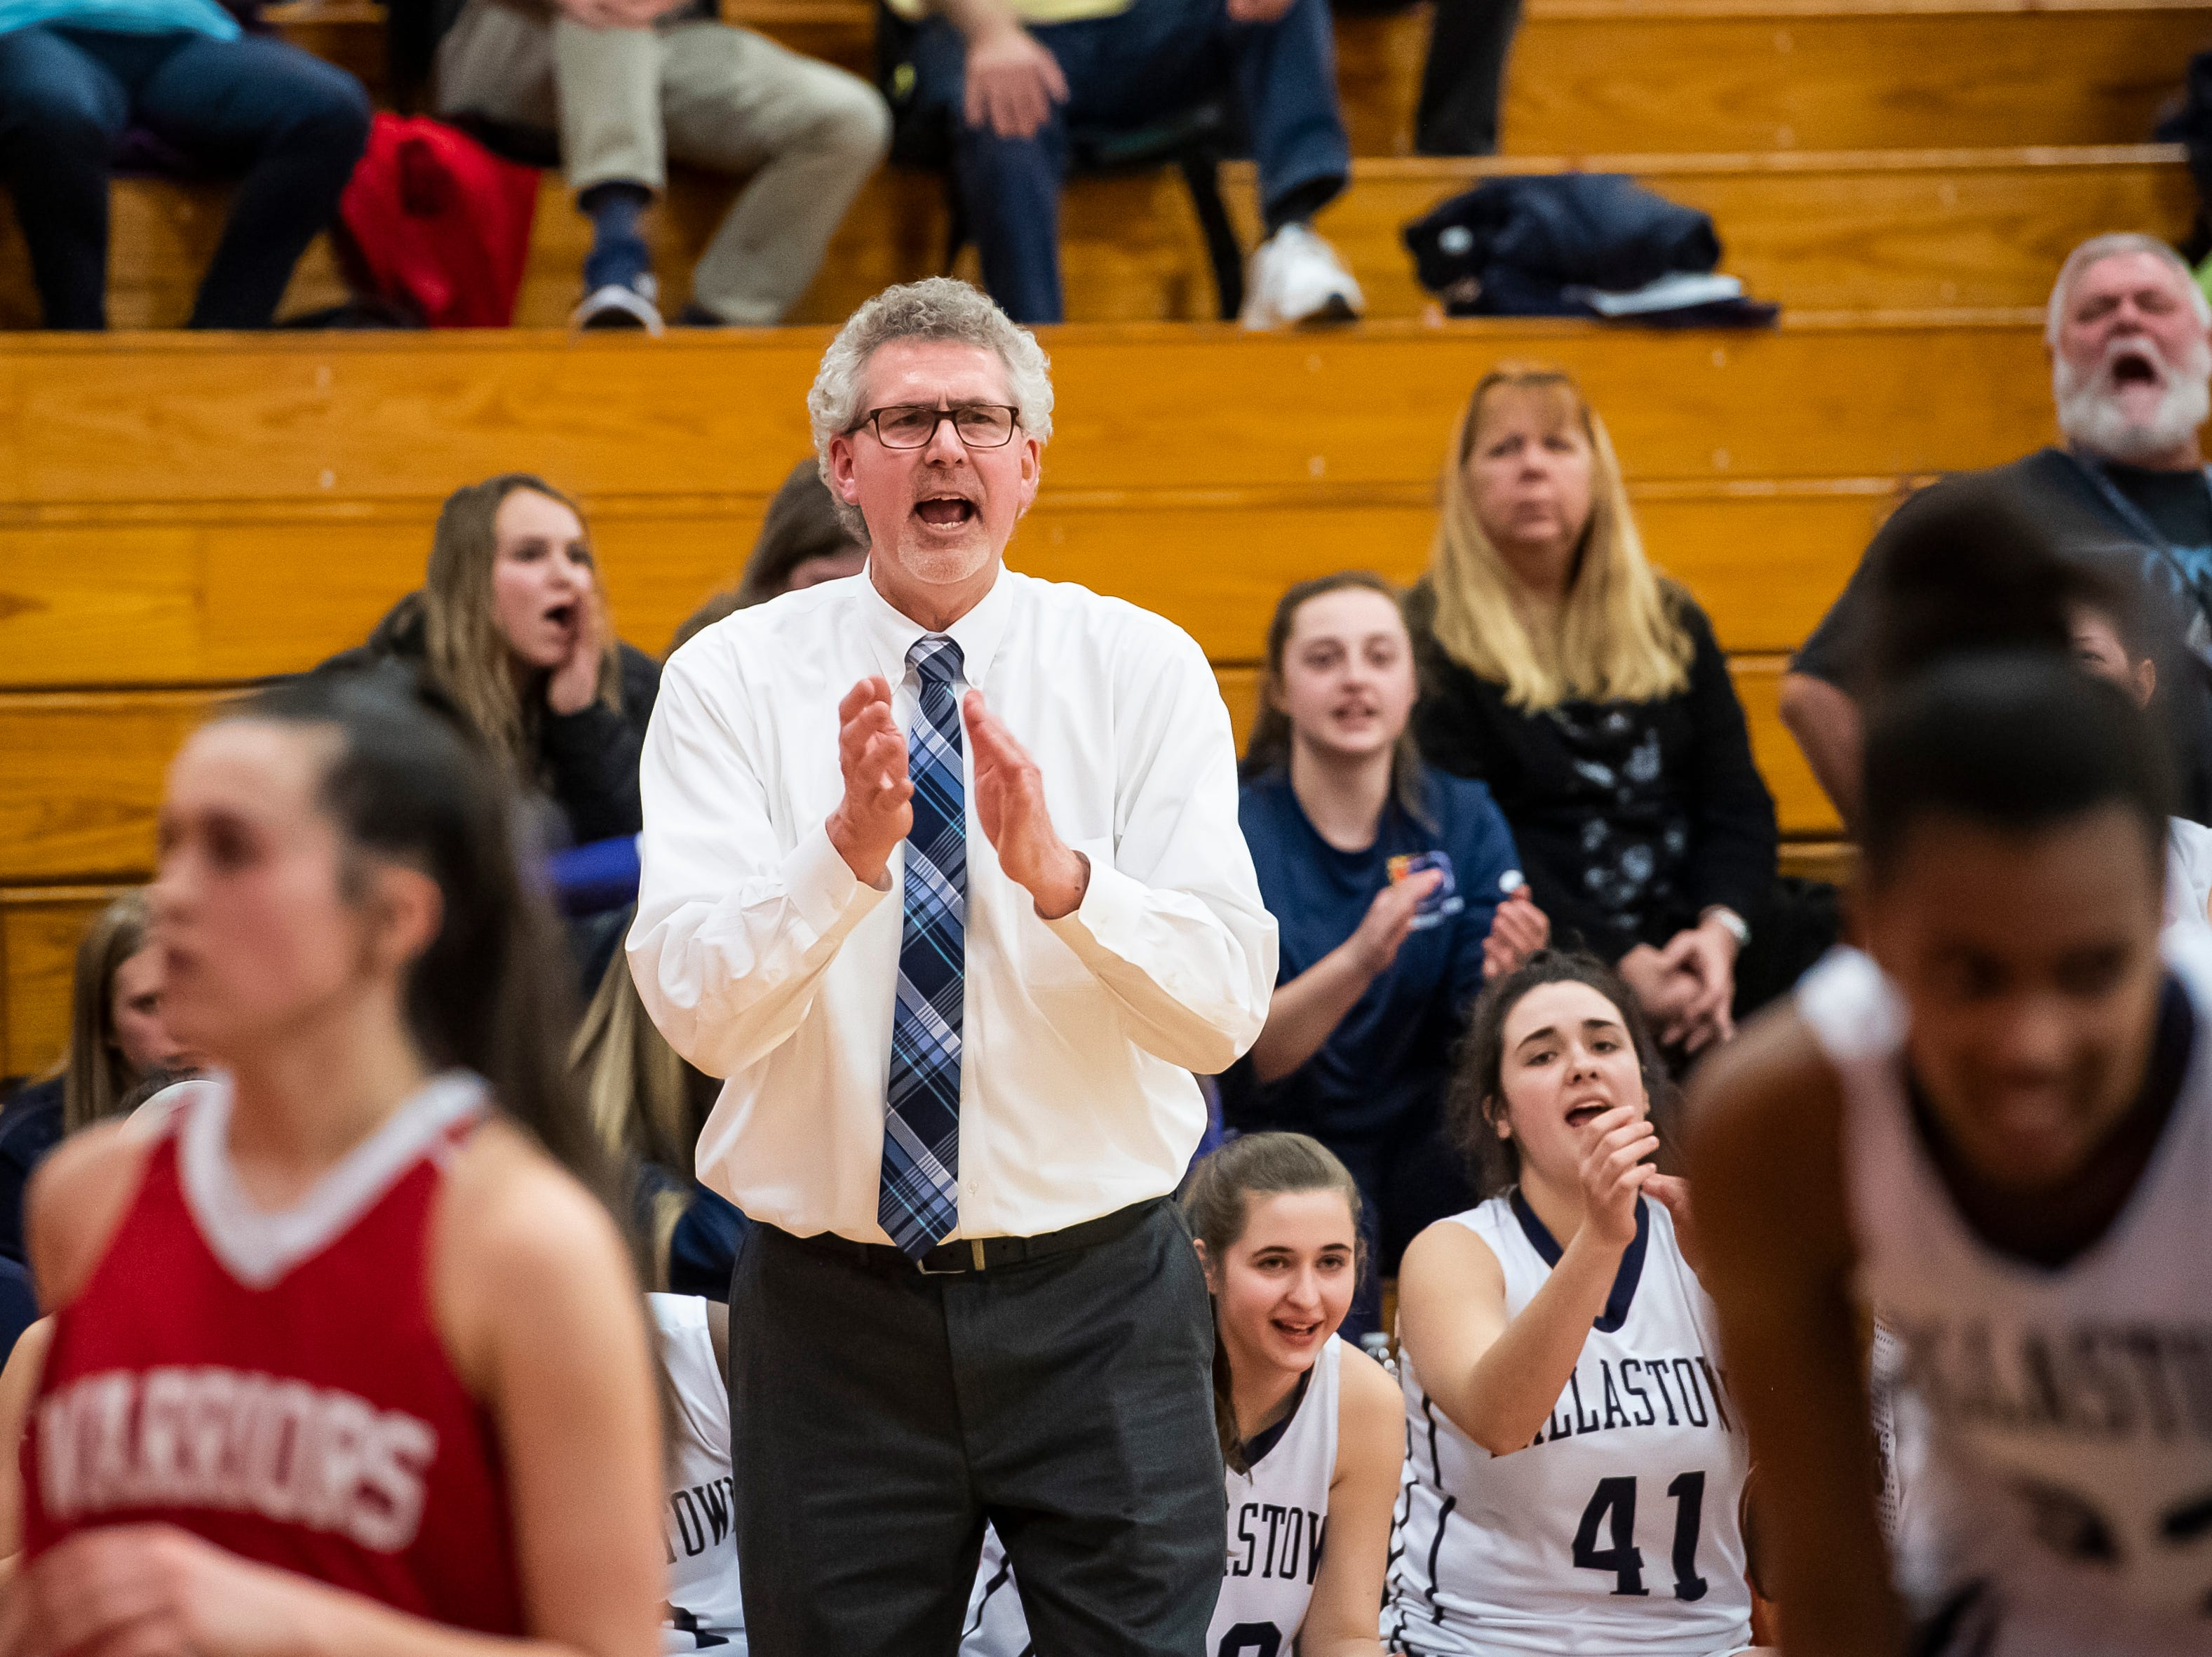 "Dallastown head coach Jay Rexroth claps after the Wildcats score against Susquehannock in a YAIAA quarterfinal game at Dover High School Friday, February 8, 2019. The Wildcats won 42-29. ""Our key all year has been locking people down, and (Gettysburg) is going to be a big challenge on Tuesday,"" Rexroth said."